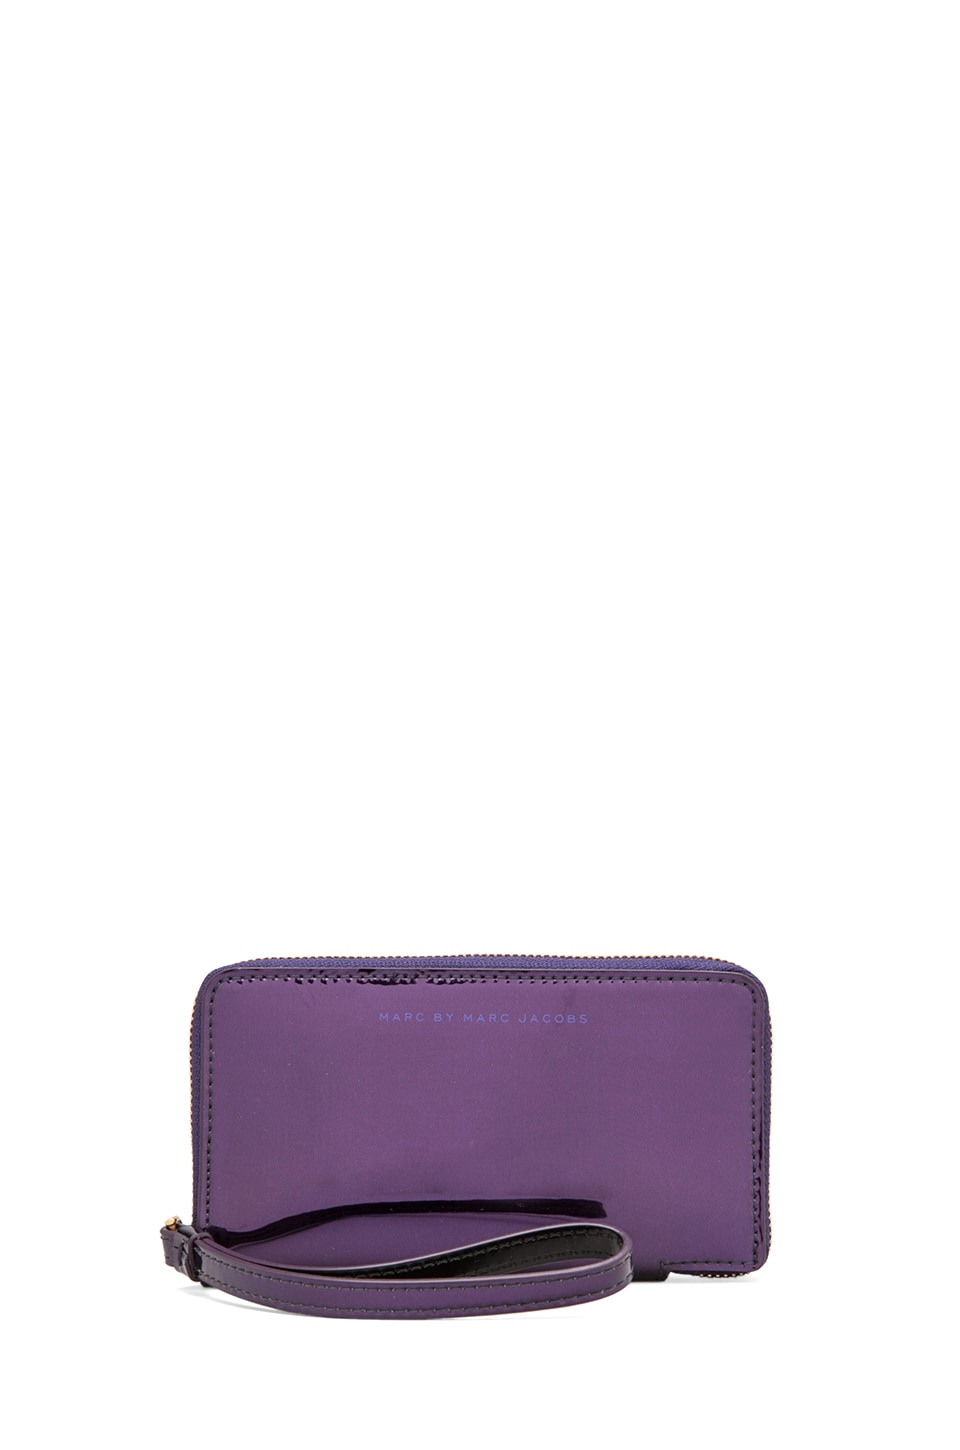 Marc by Marc Jacobs Techno Wingman in Purple Holographic